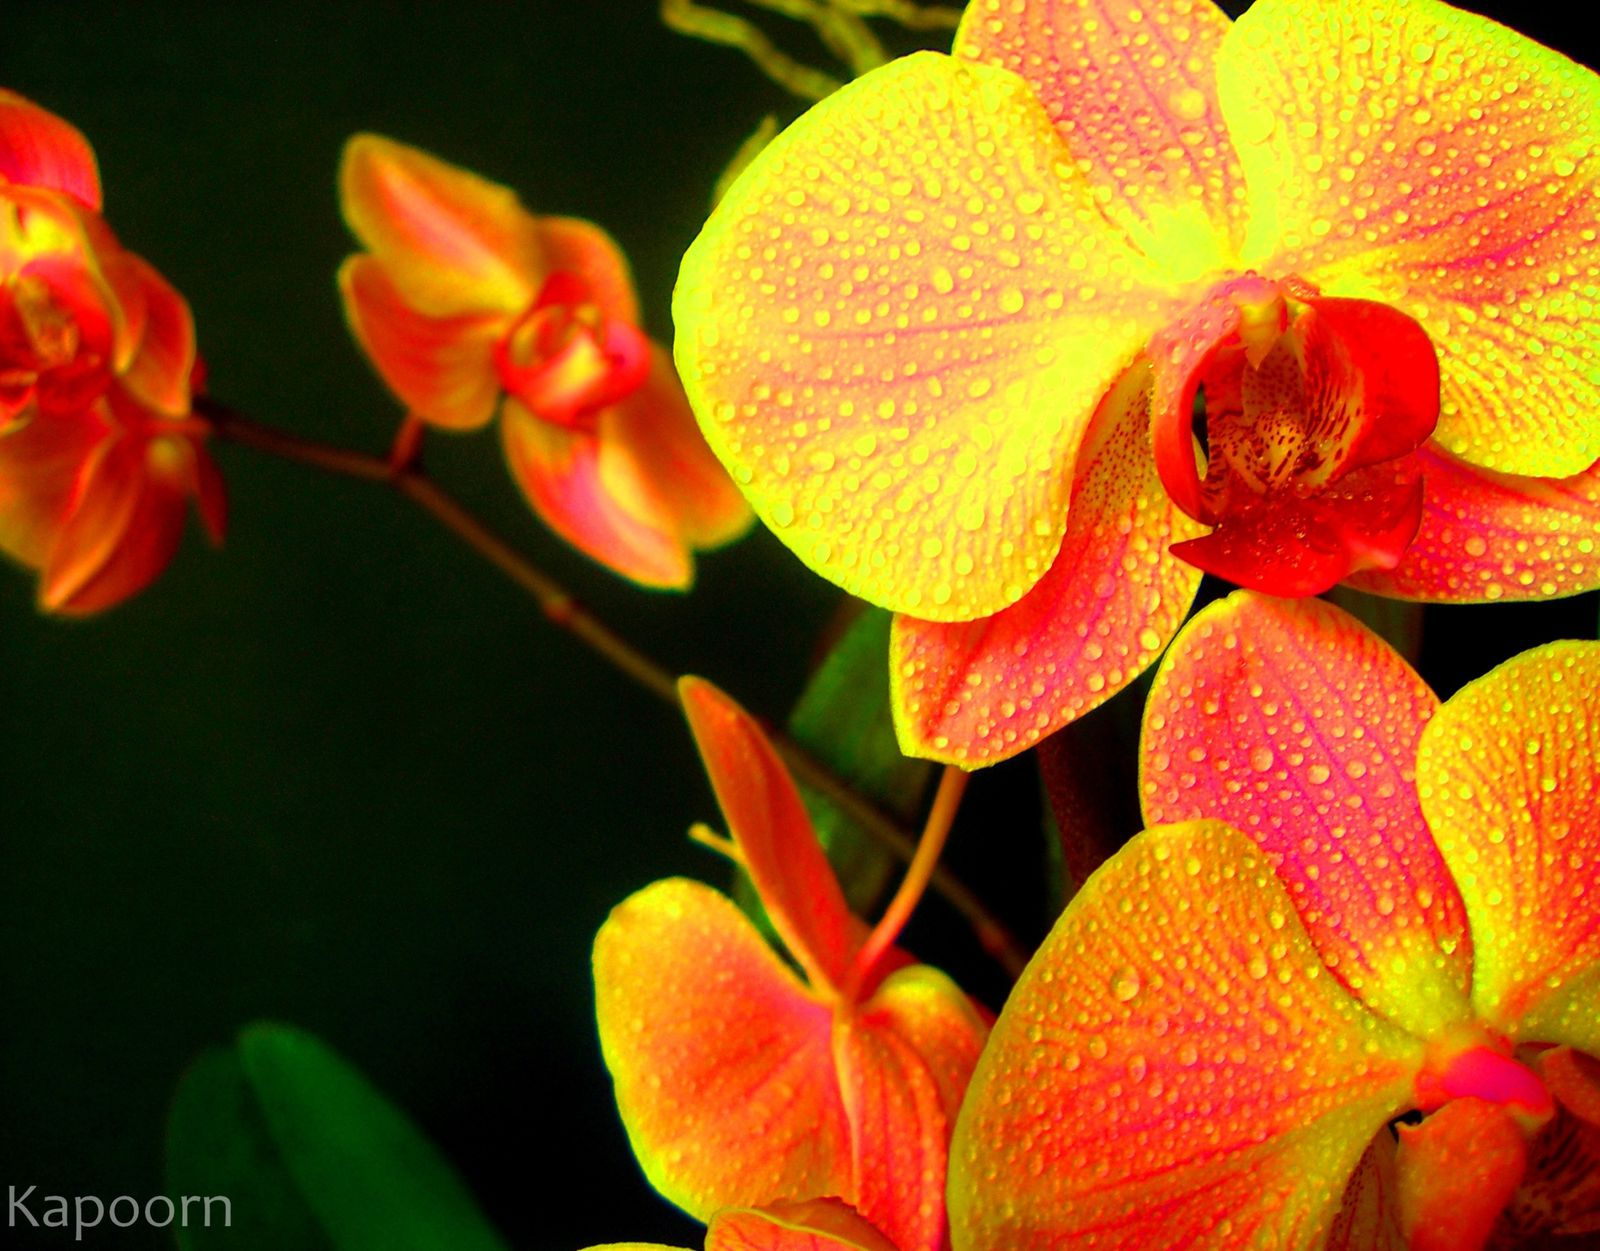 ob_ceb679_kapoorn-photographie-psychedelic-nature-psychedel